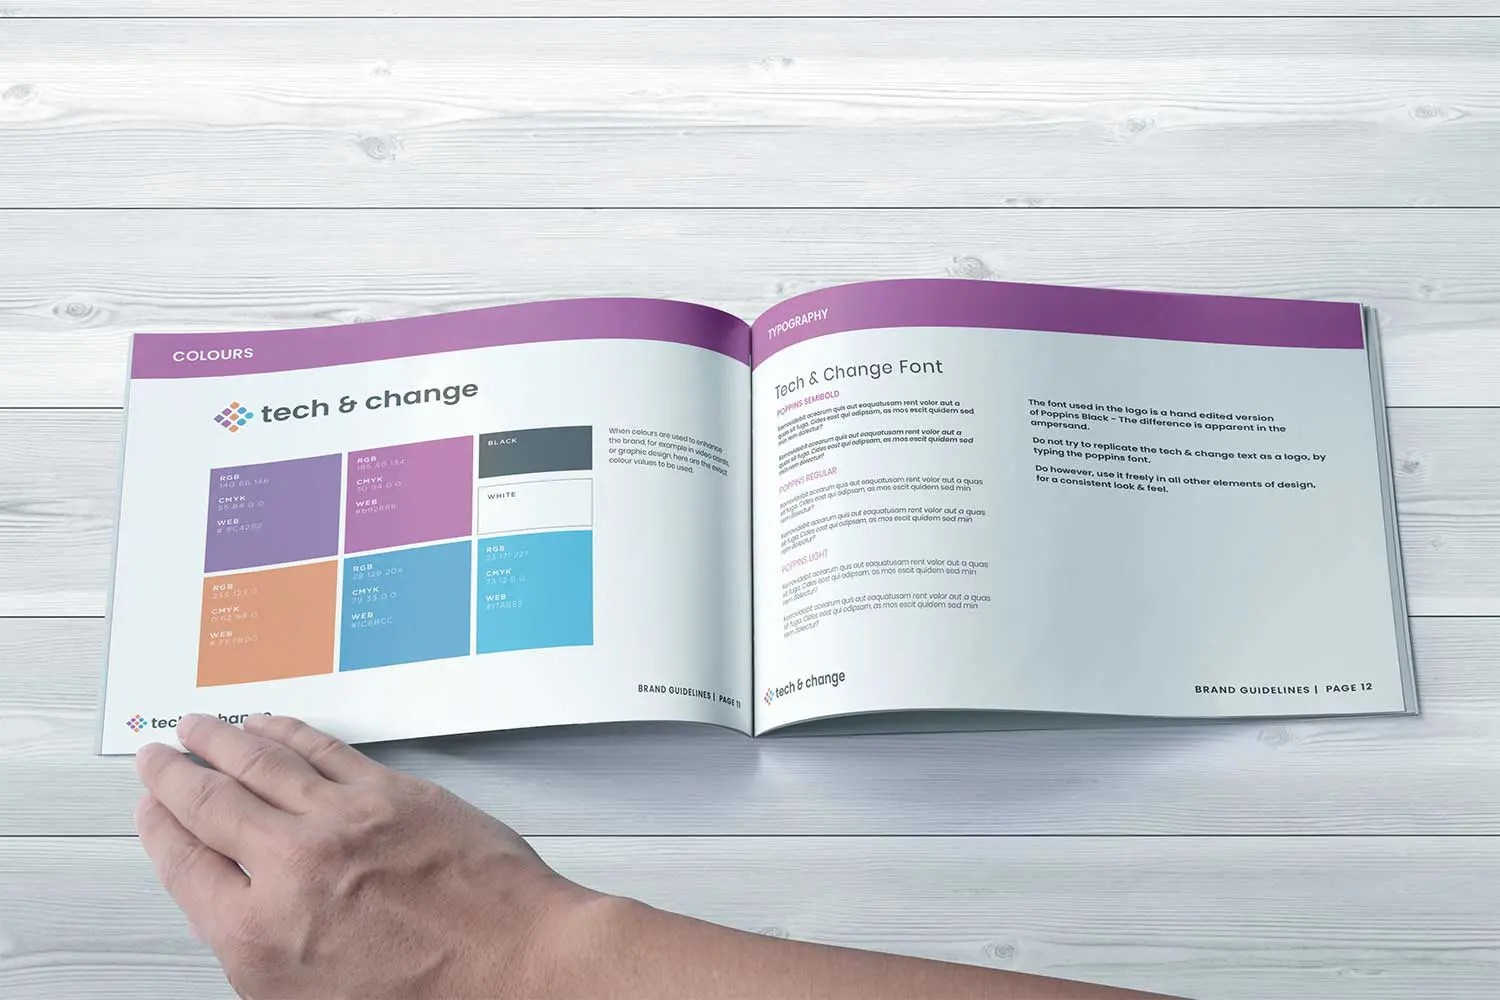 Provident Tech & Change Brand Guidelines, Factory. Brand Agency in ManchesterProject Image Digital Agency